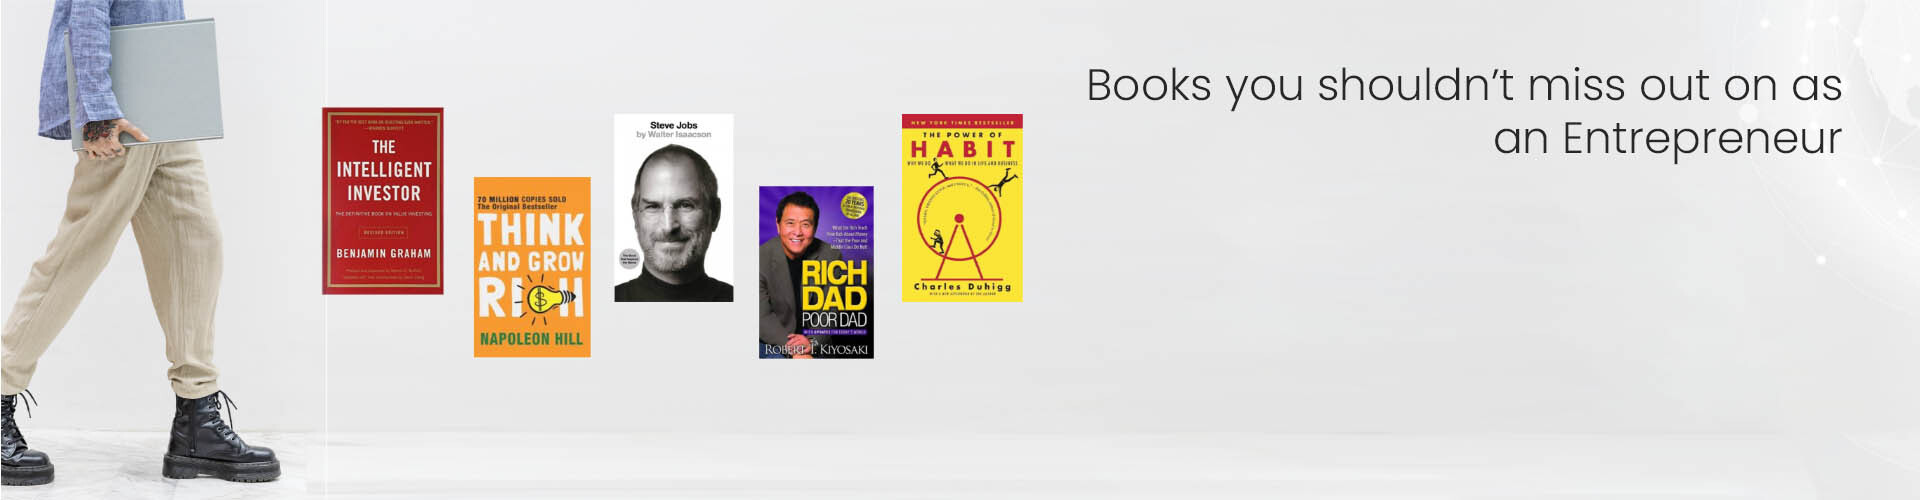 Books you shouldn't miss out on as an Entrepreneur